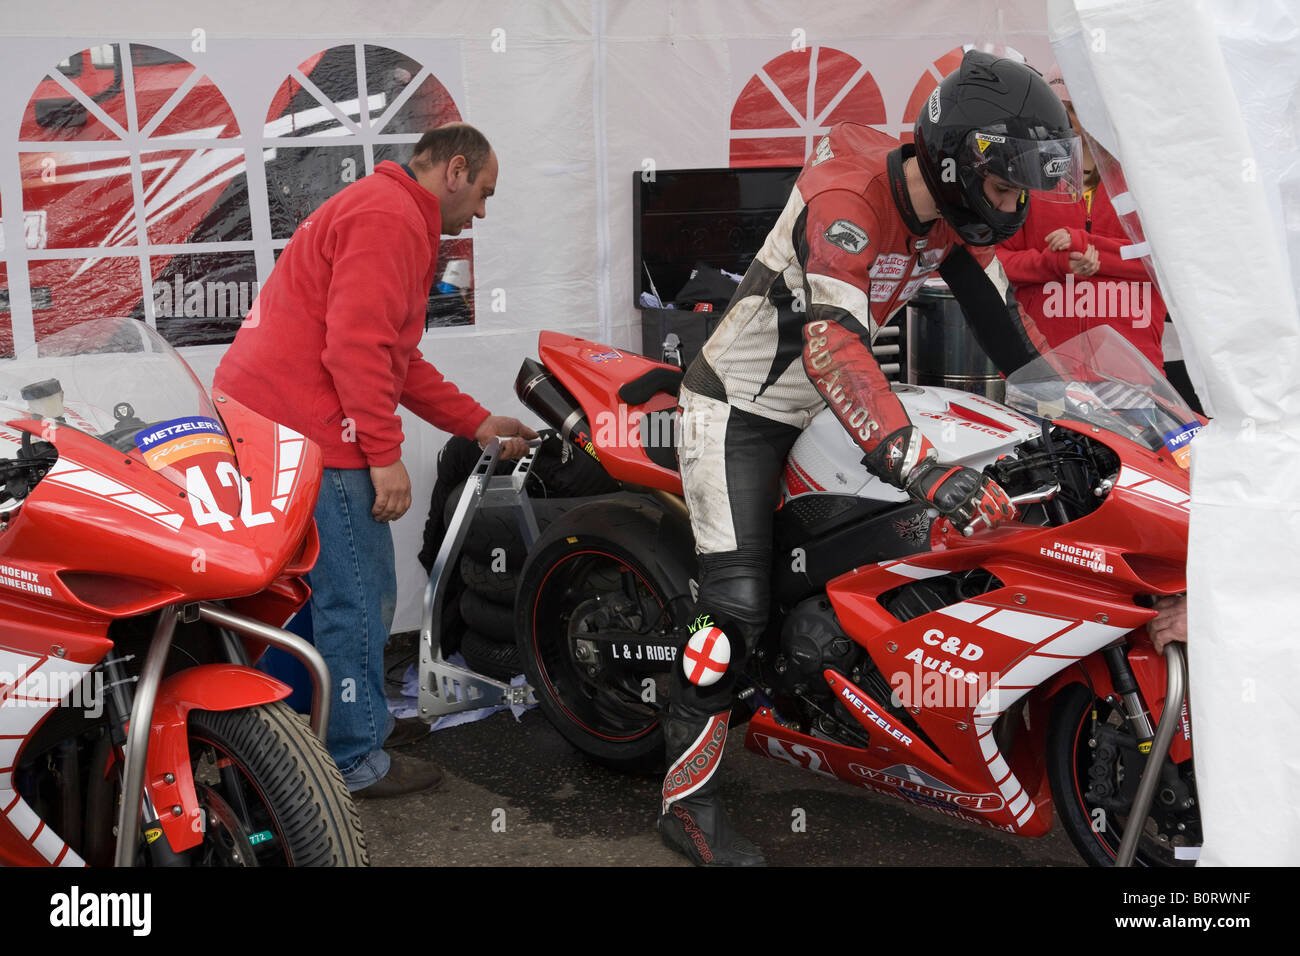 Michael Elliott prepares to exit the paddock for practice in the Metzeler National Superstock 1000 Championship, - Stock Image